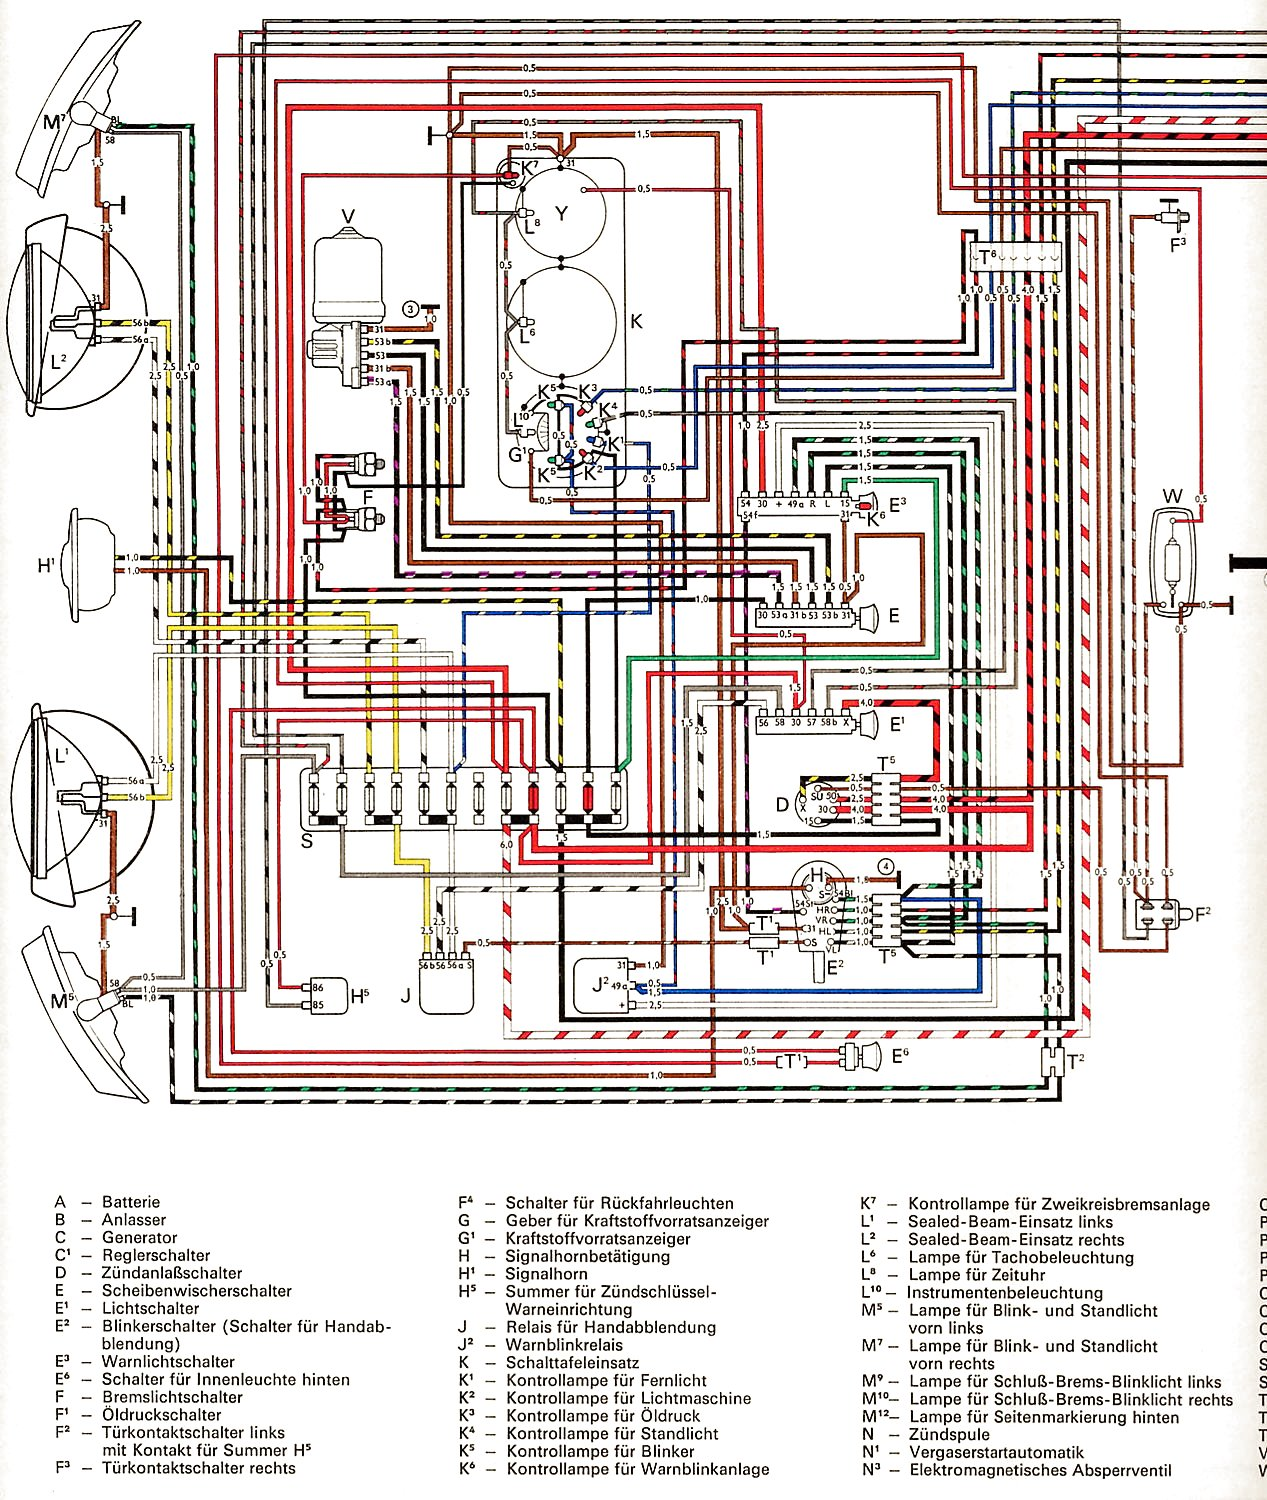 1974 vw beetle engine diagram online circuit wiring diagram u2022 rh electrobuddha co uk